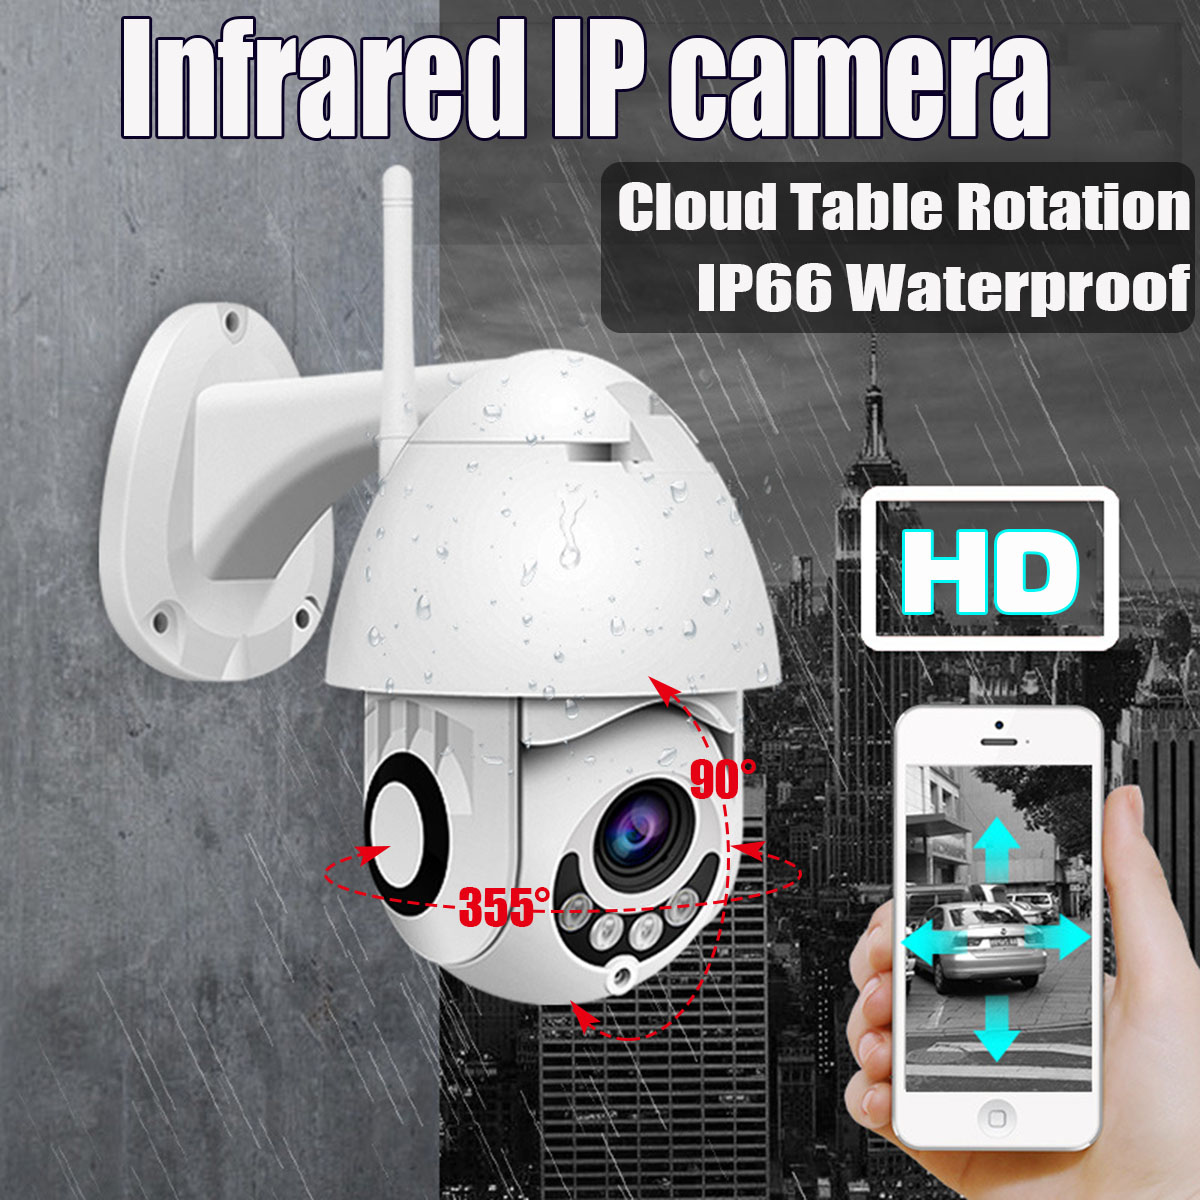 Wireless Outdoor HD 1080P PTZ WIFI IP Camera Night Vision CCTV Video Home Security 2MP IR Home Surveilance Camera Two Way AudioWireless Outdoor HD 1080P PTZ WIFI IP Camera Night Vision CCTV Video Home Security 2MP IR Home Surveilance Camera Two Way Audio